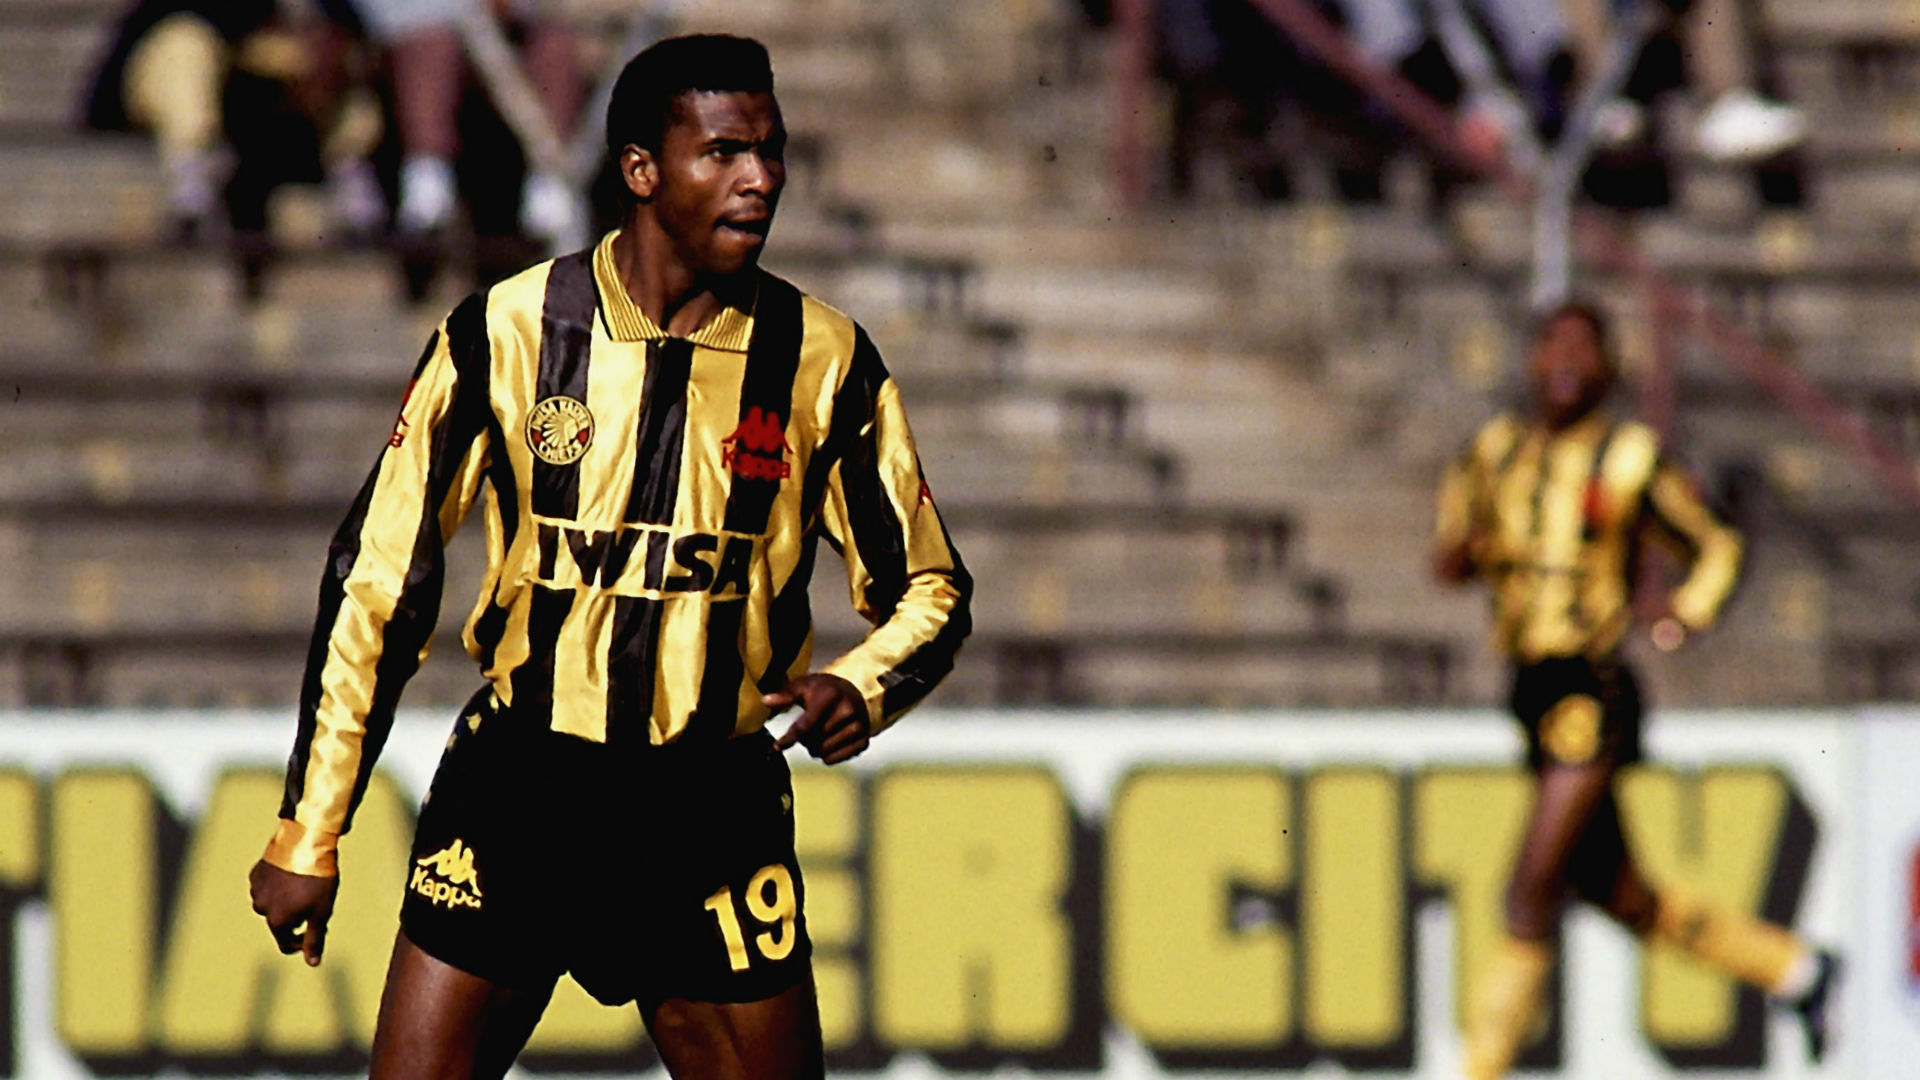 Lucas Radebe of Kaizer Chiefs